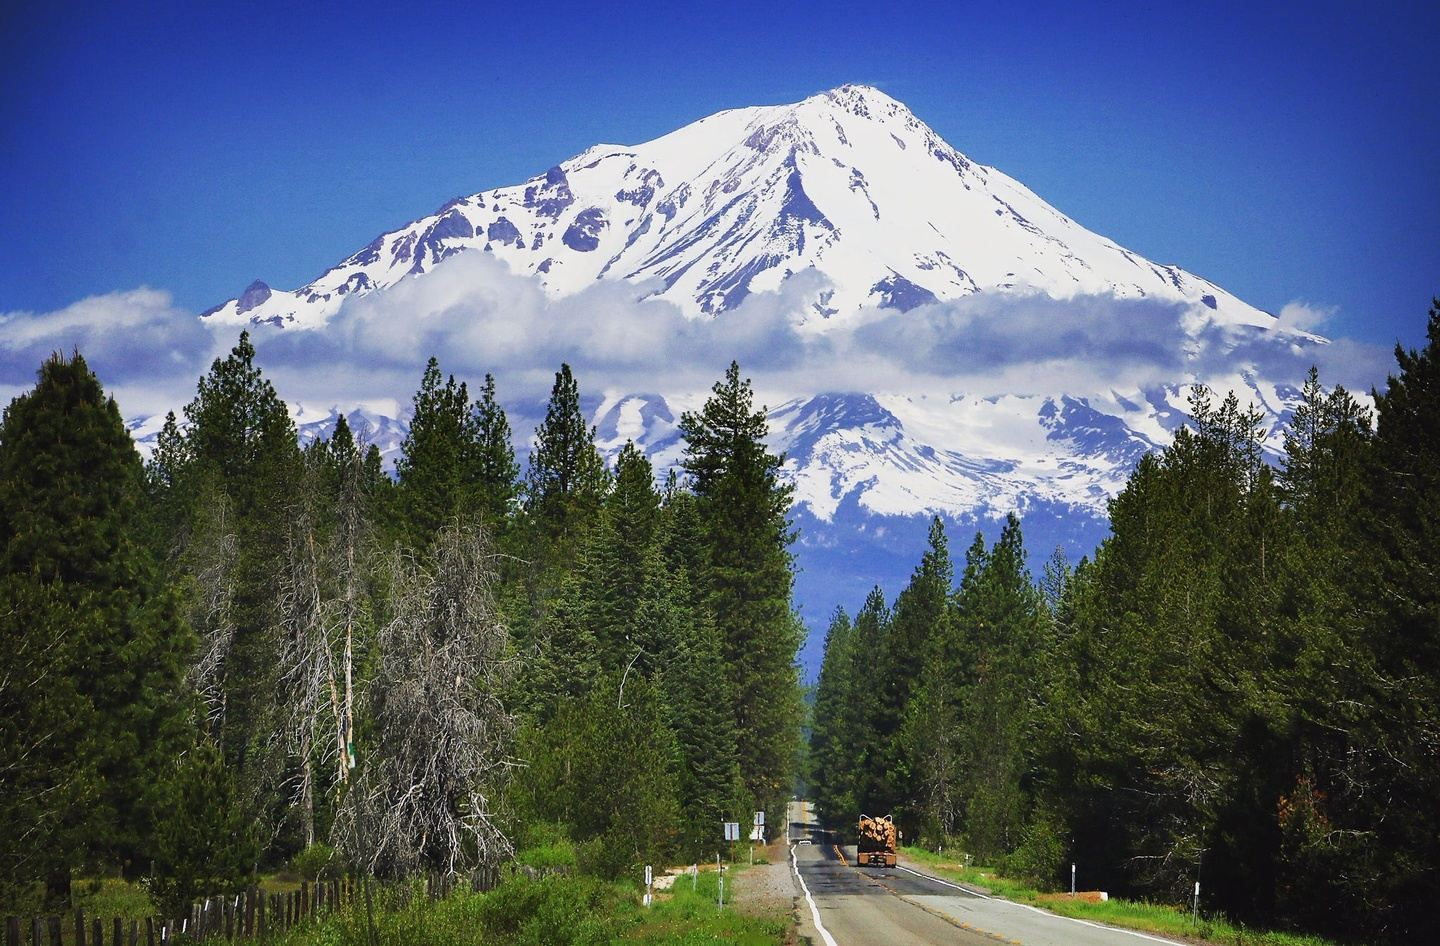 Mt. Shasta Sister's Self-Realization & Empowerment Gathering